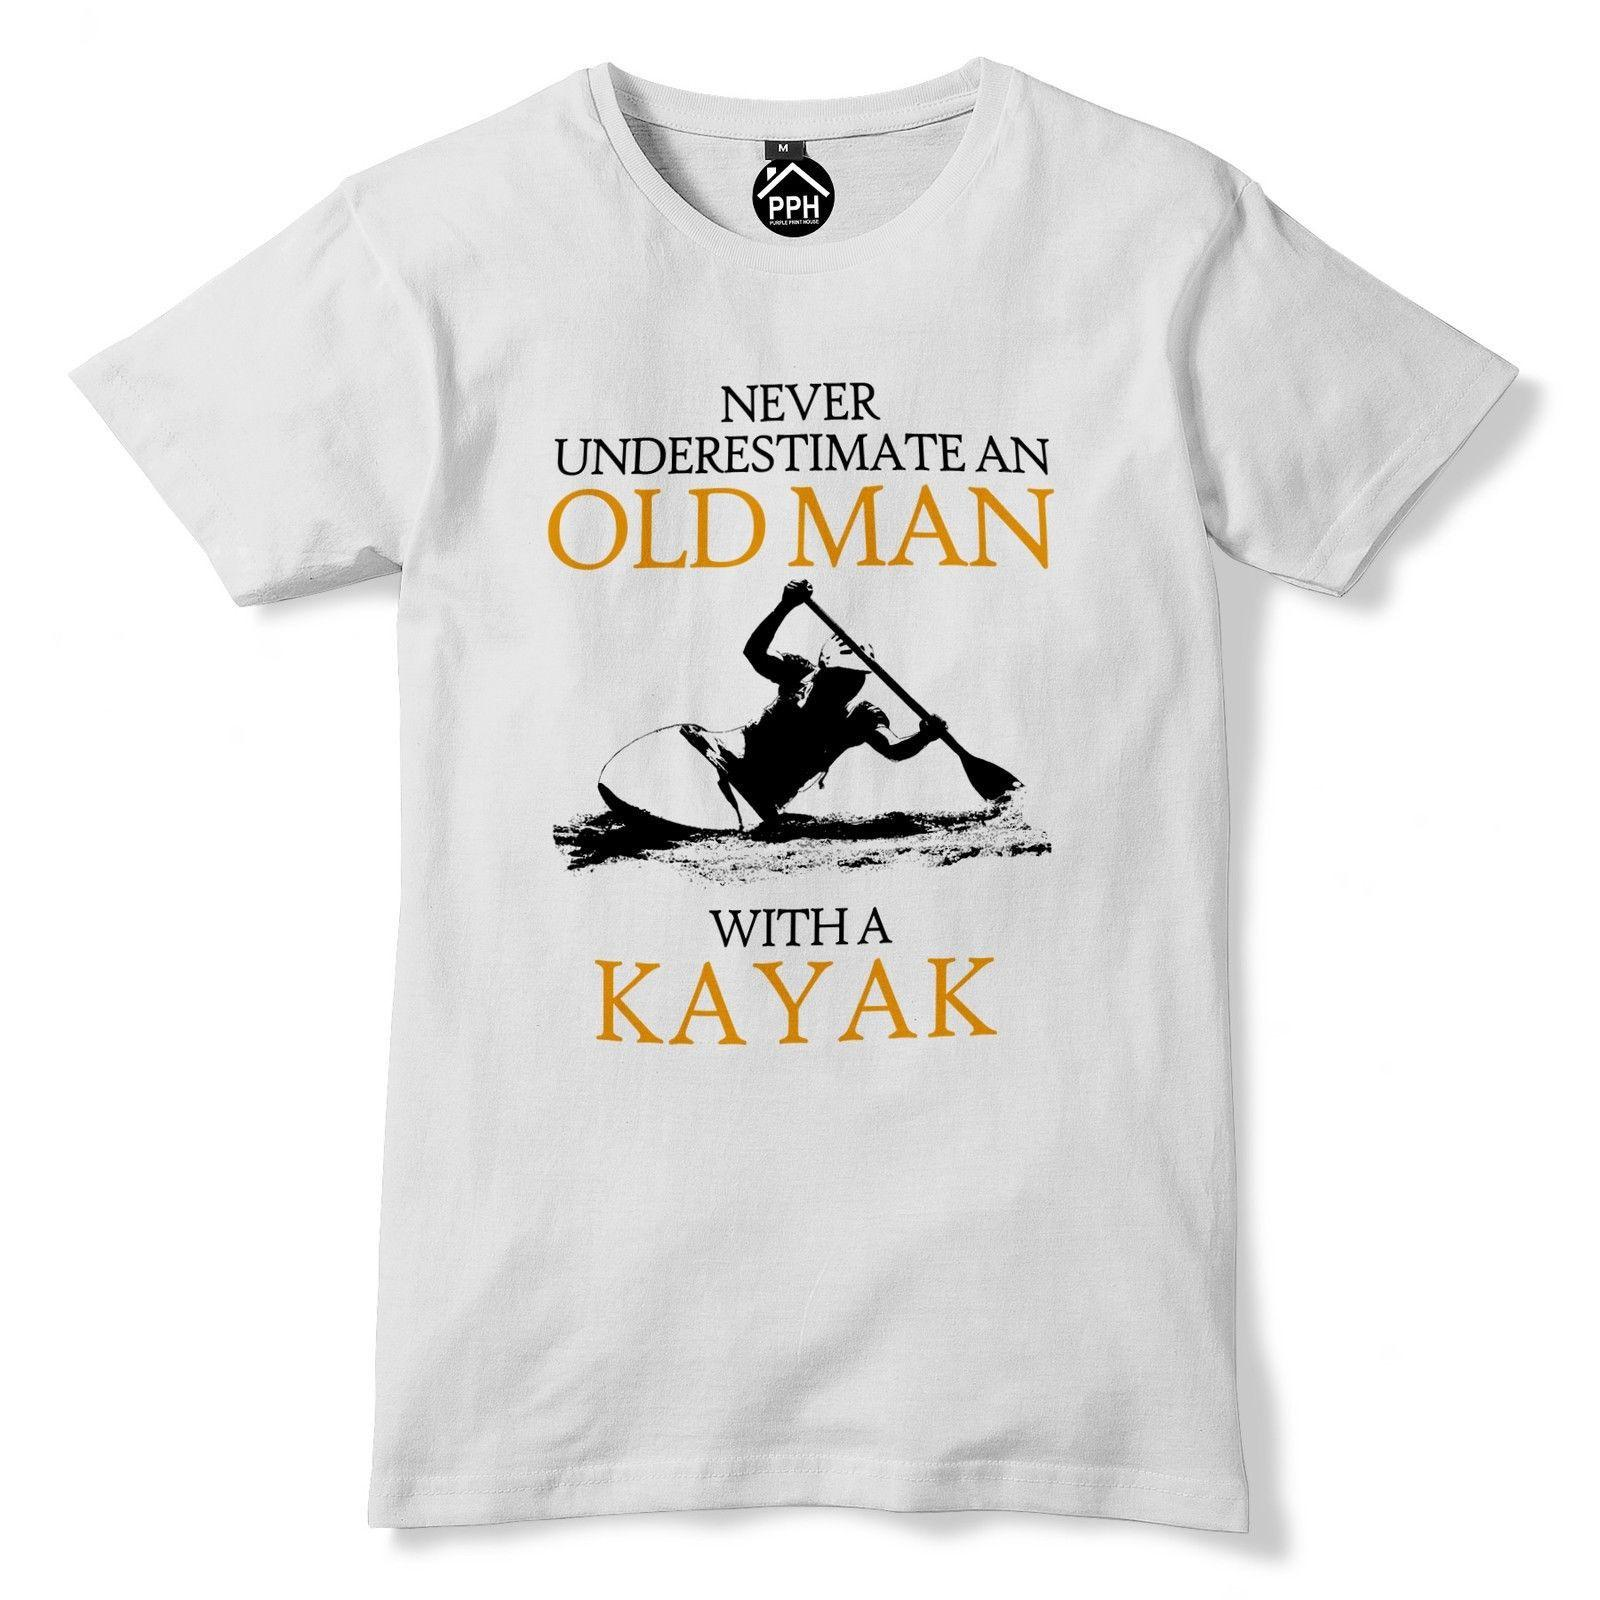 e5c2a0d481 Never Underestimate Old Man KAYAK T Shirt Mens Sea Retired Sail Kayaking  Top 223 Funny Unisex Casual Tee Designs Neck T Shirts From Clothing_dealss,  ...